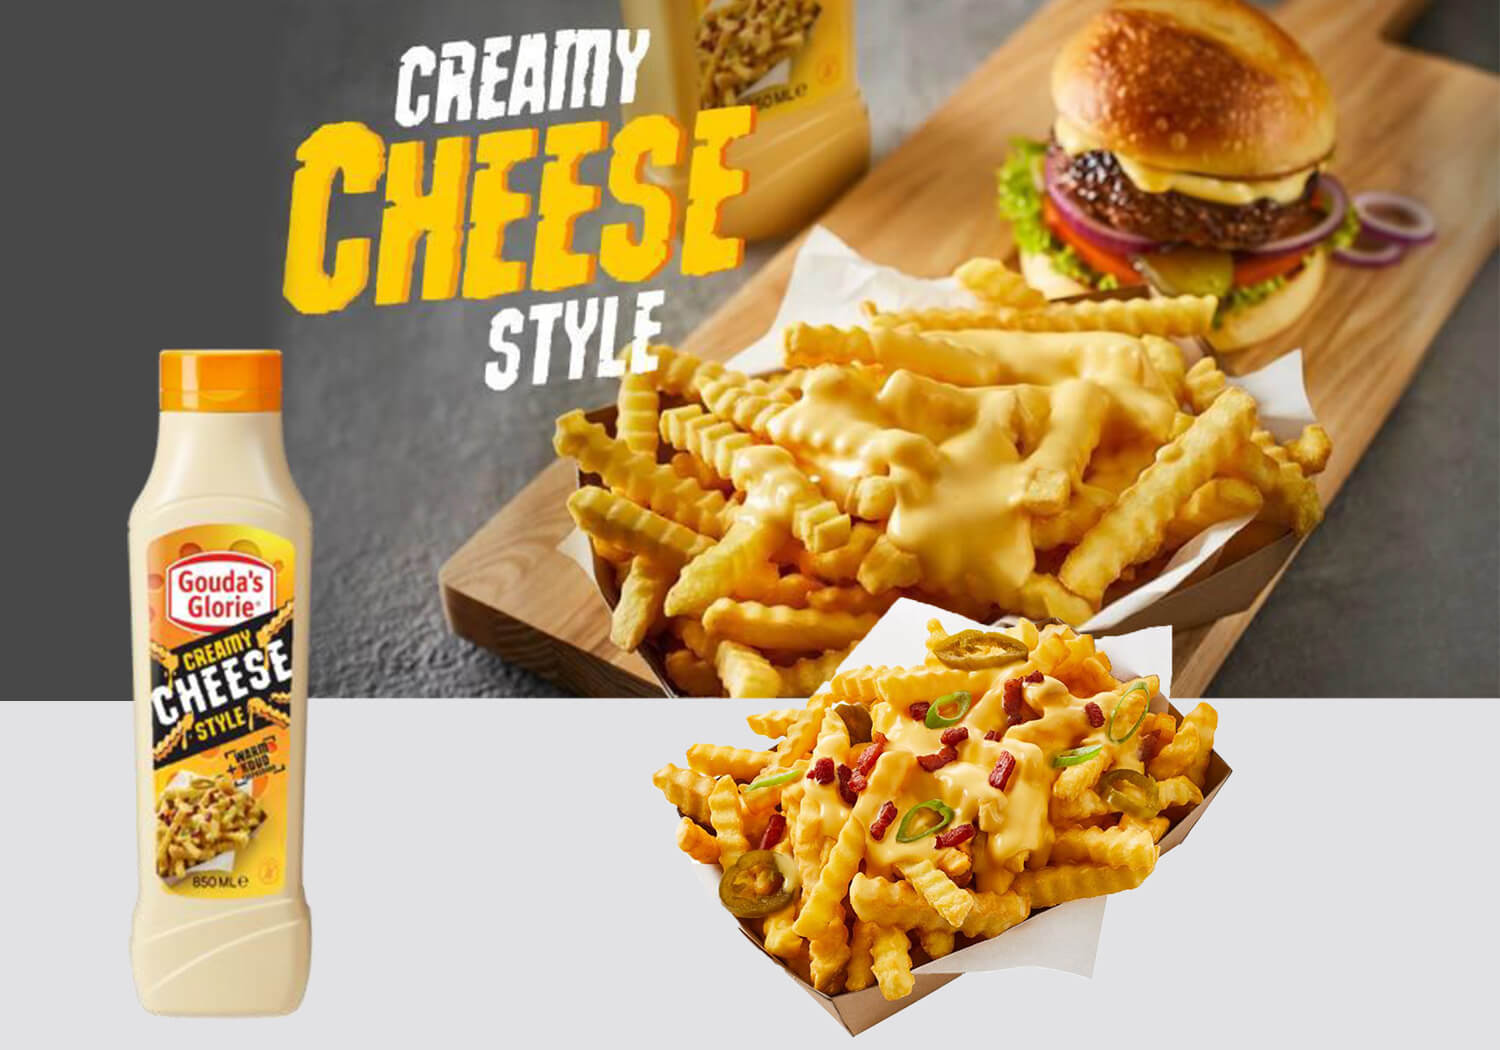 Creamy Cheese Style